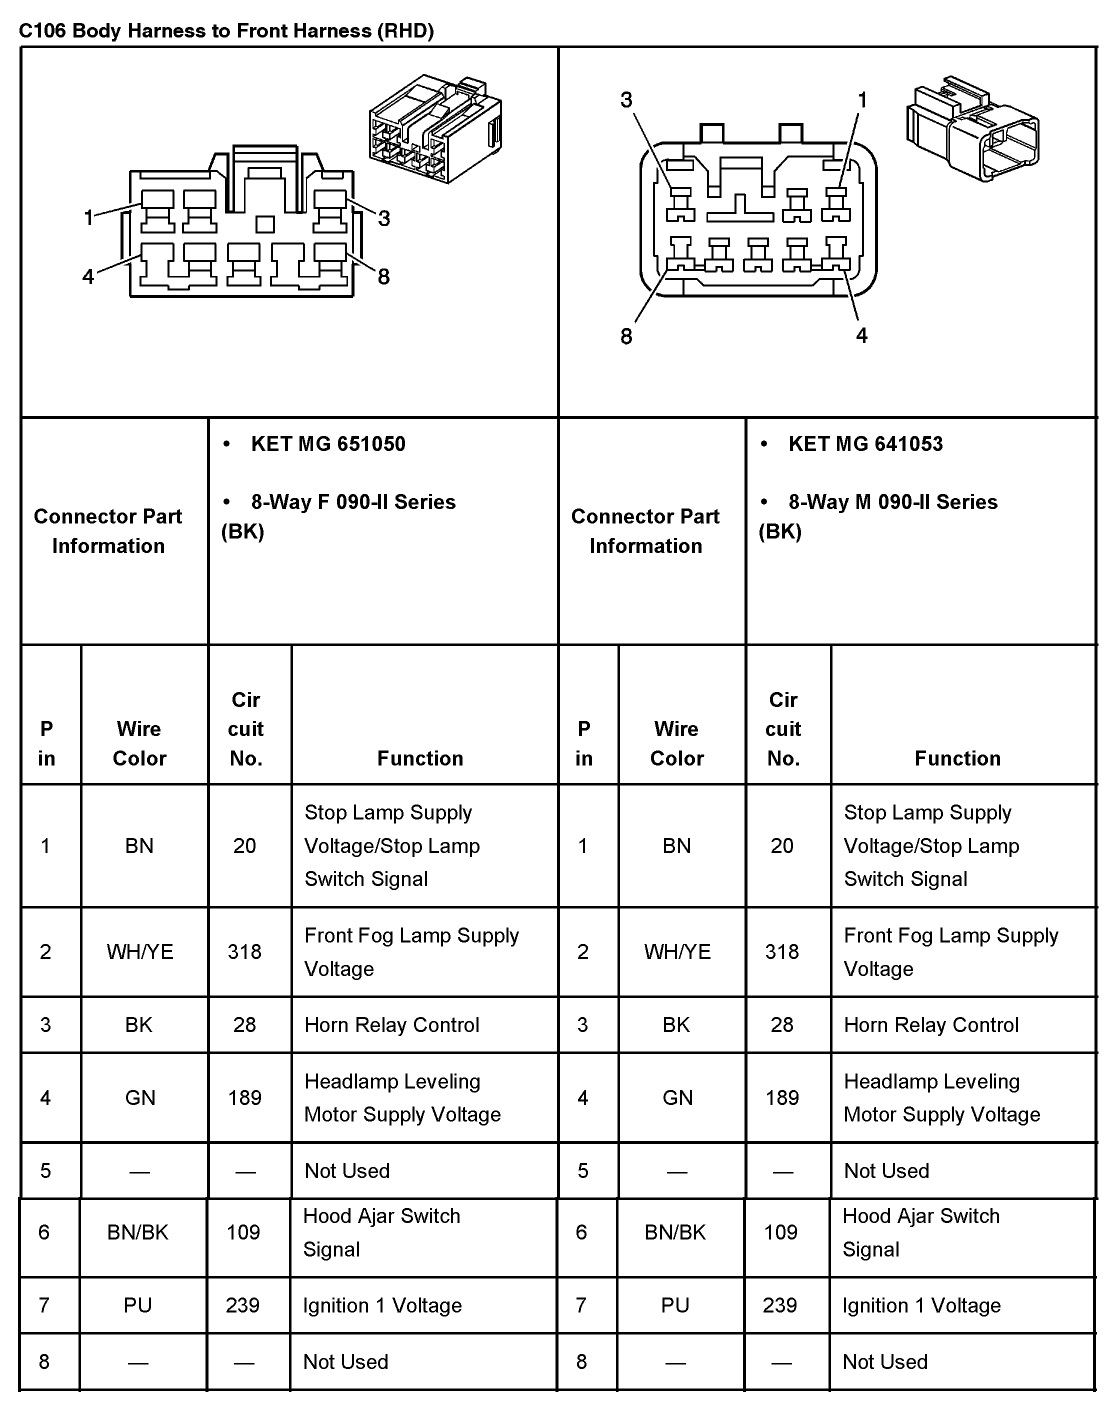 2010 E250 Fuse Diagram Wiring Diagrams 2009 Ford Panel Library Rh 2 Codingcommunity De 1992